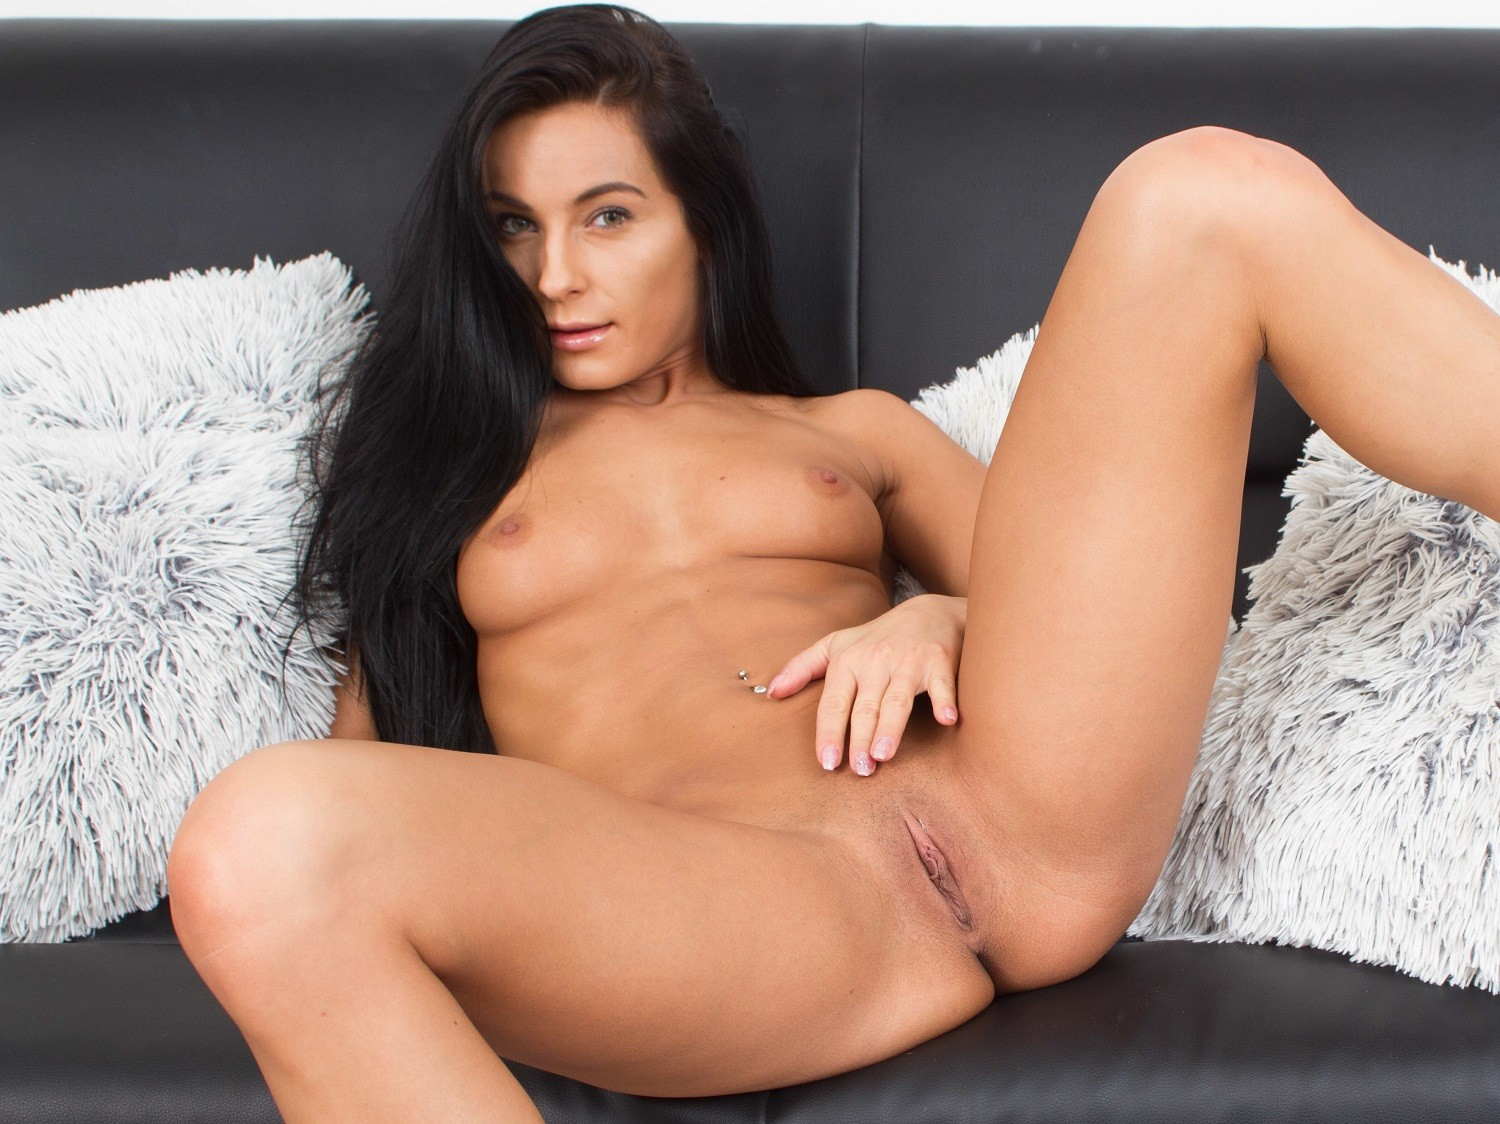 thinking of brother's big cock – striptease and masturbation vr - vr